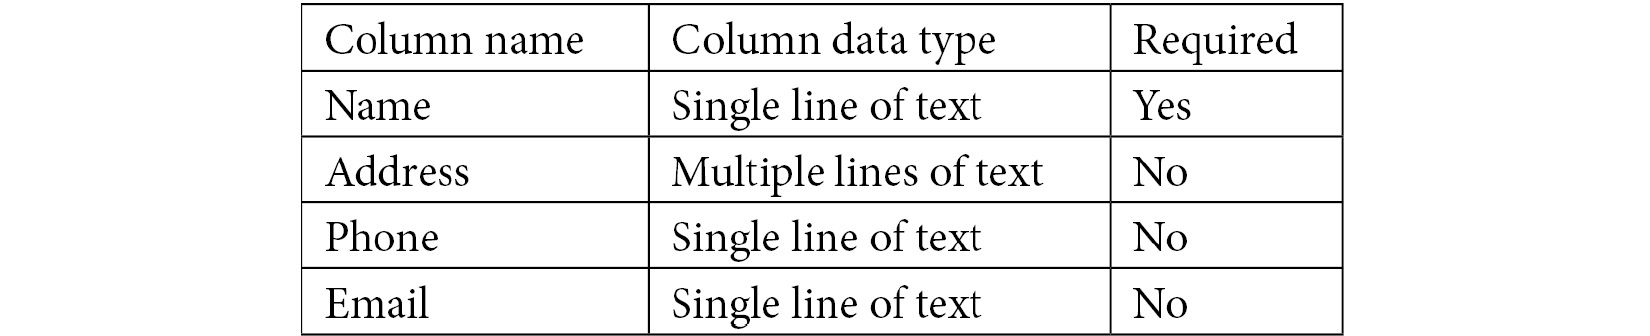 Figure 1.2 – Clients list columns